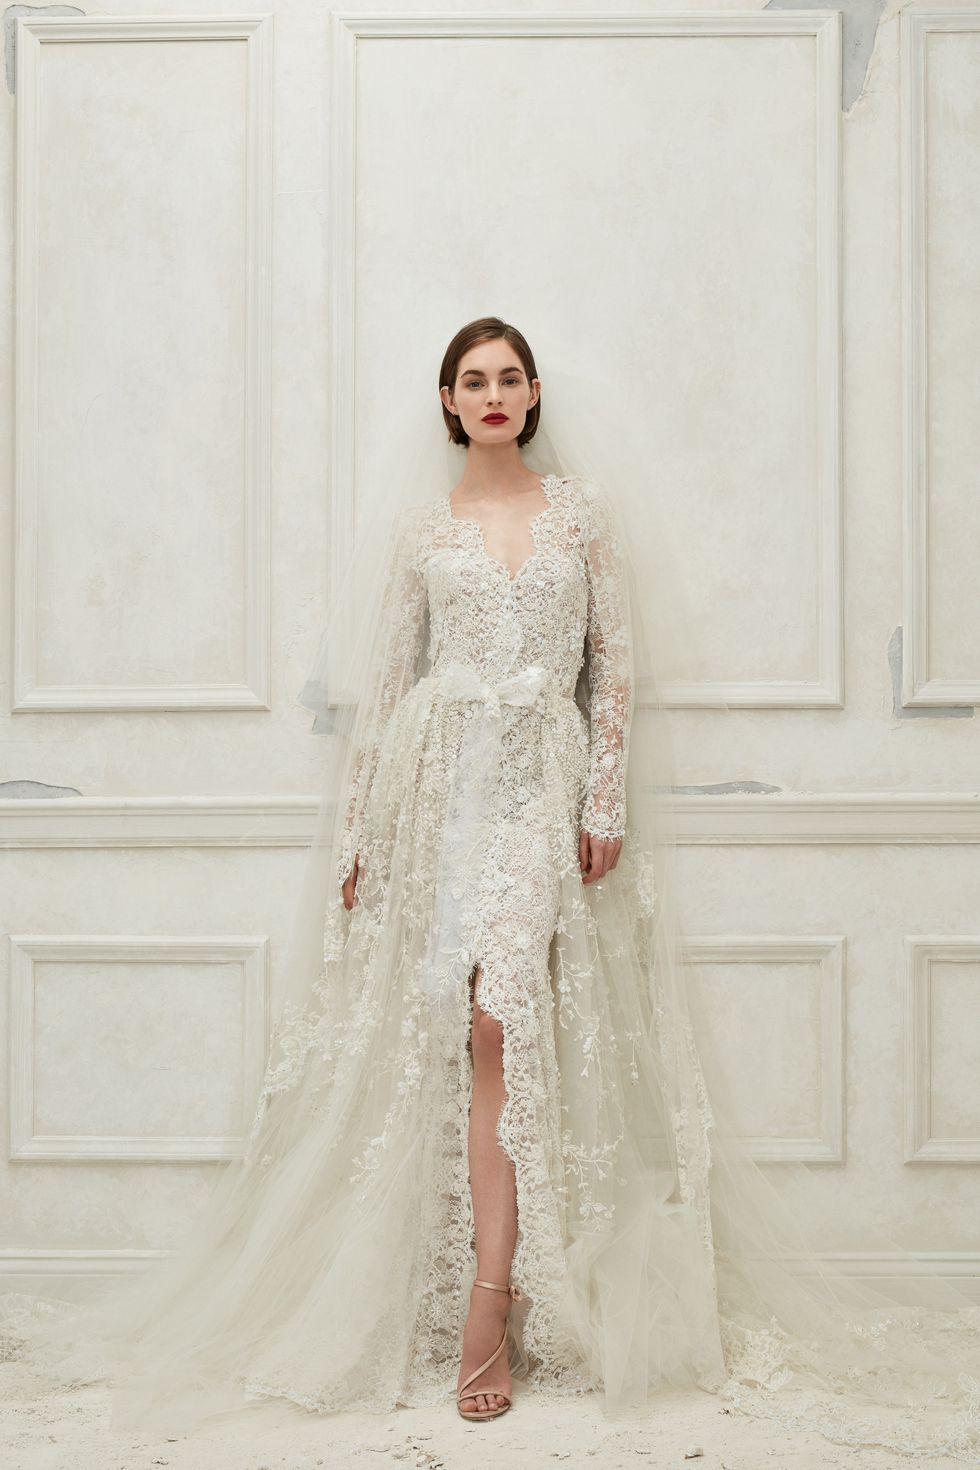 ... Like a Royal–These Are The Best Long Sleeve Wedding Dresses To Shop Now.  Saving On Wedding Dresses. https   www.harpersbazaar.com wedding bridal-fashion  ... 705fe0126